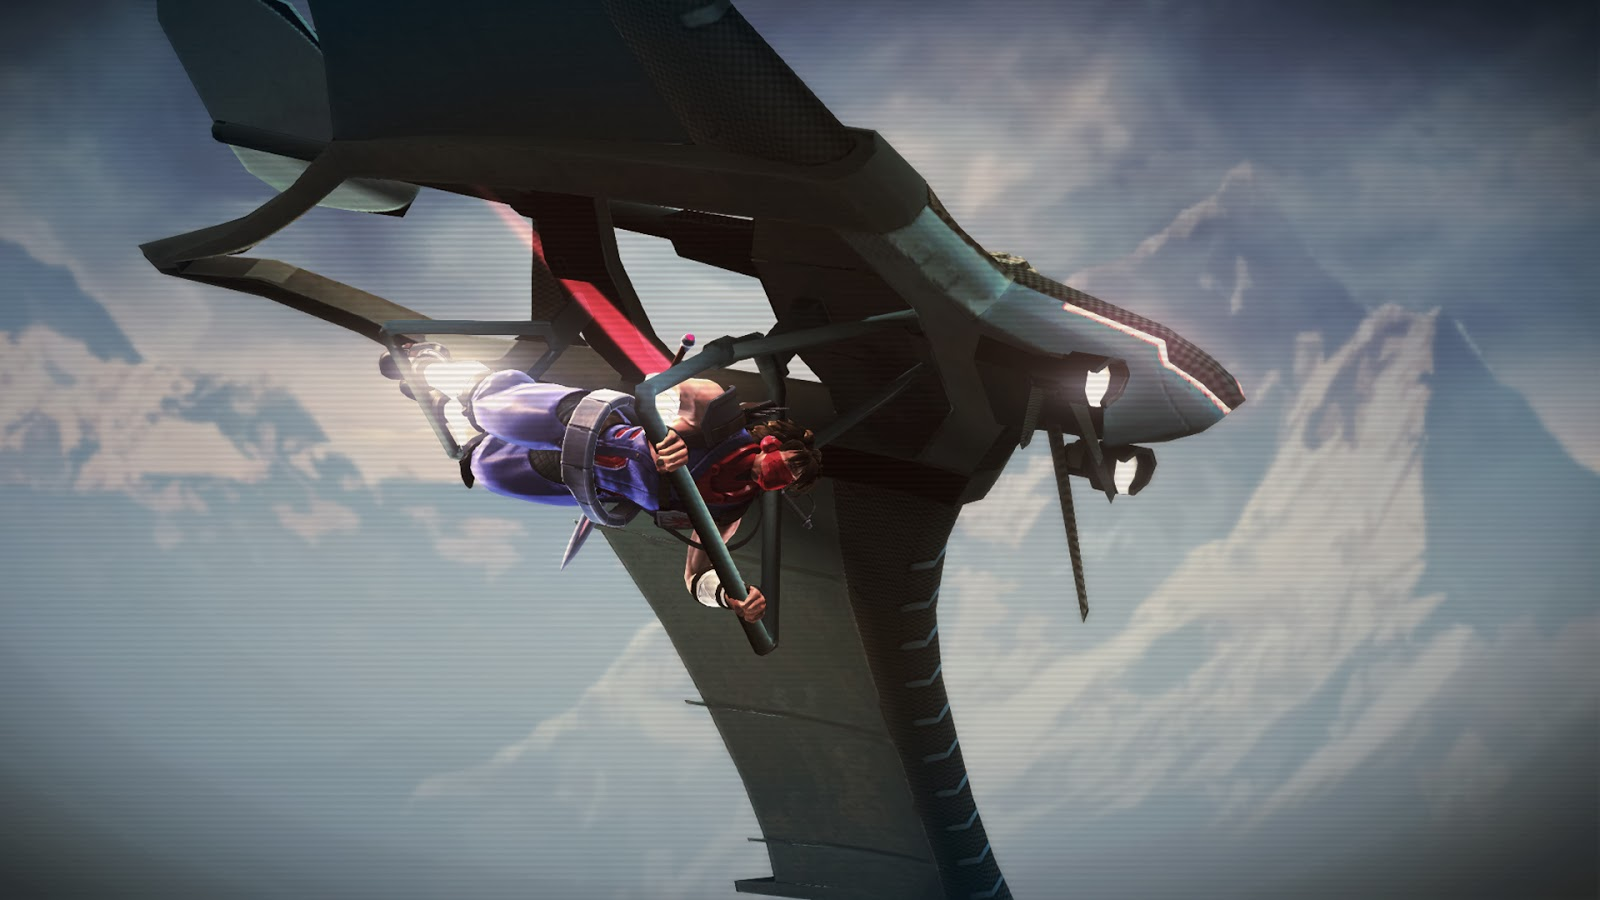 New Modes And Release Date Confirmed For Strider - weknowgamers